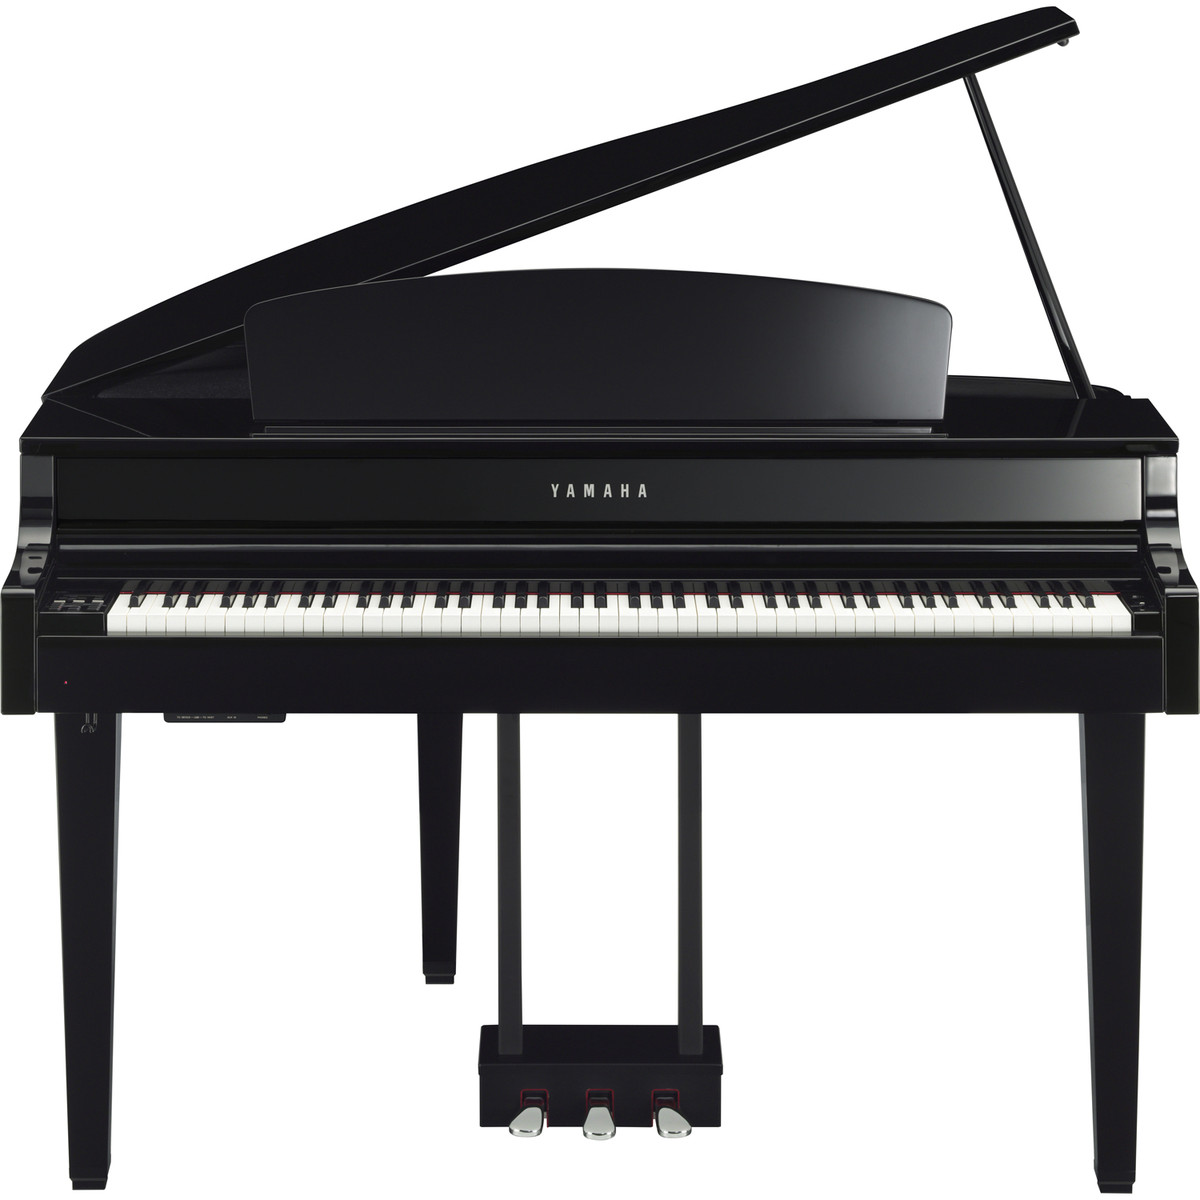 Yamaha clp565 grand piano polished ebony at for Piano yamaha price list